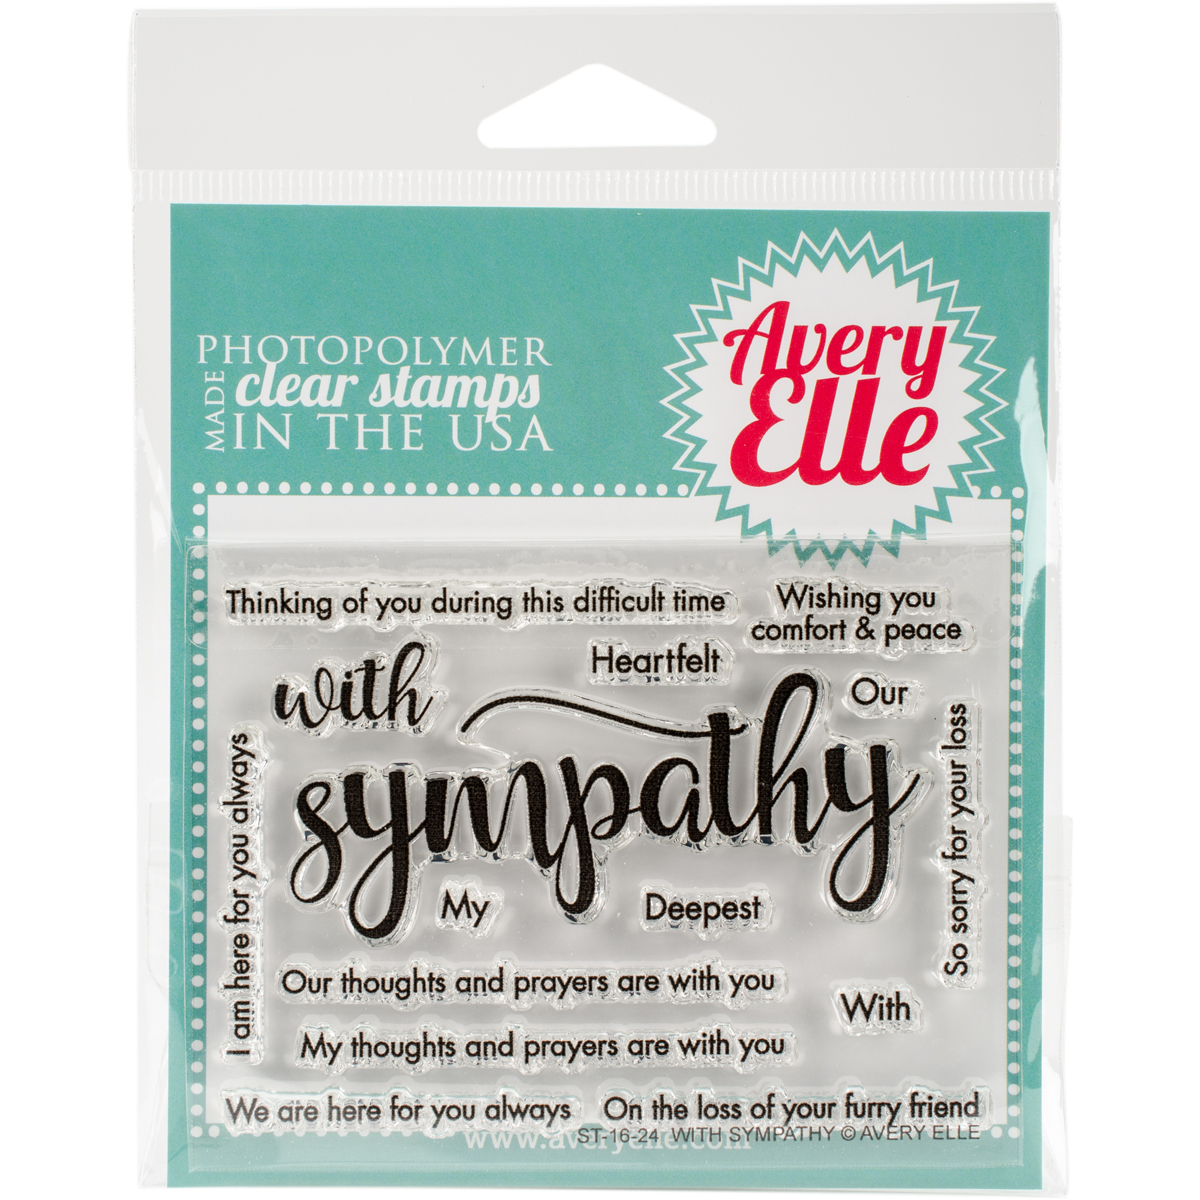 Avery Elle Clear Stamp Set - With Sympathy